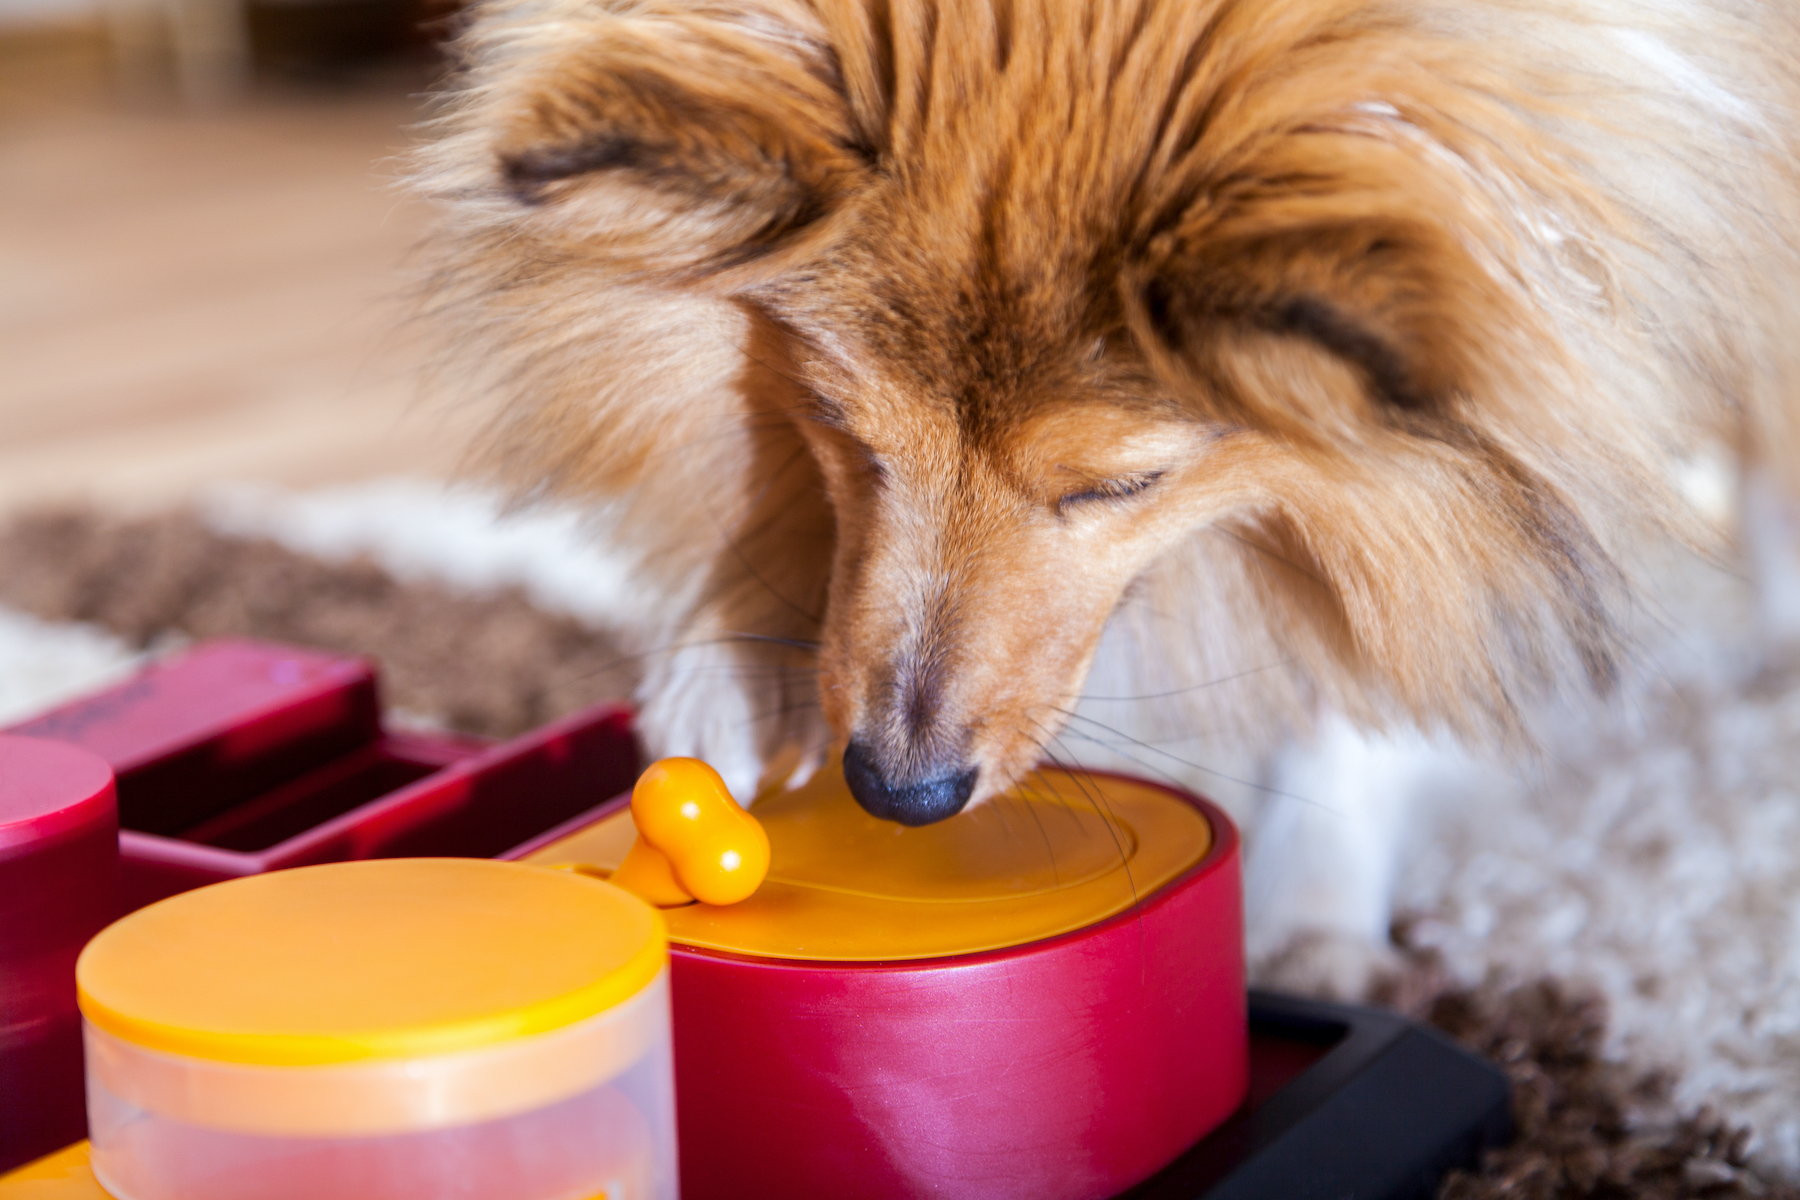 Canva - a Shetland Sheepdog on a dog toy